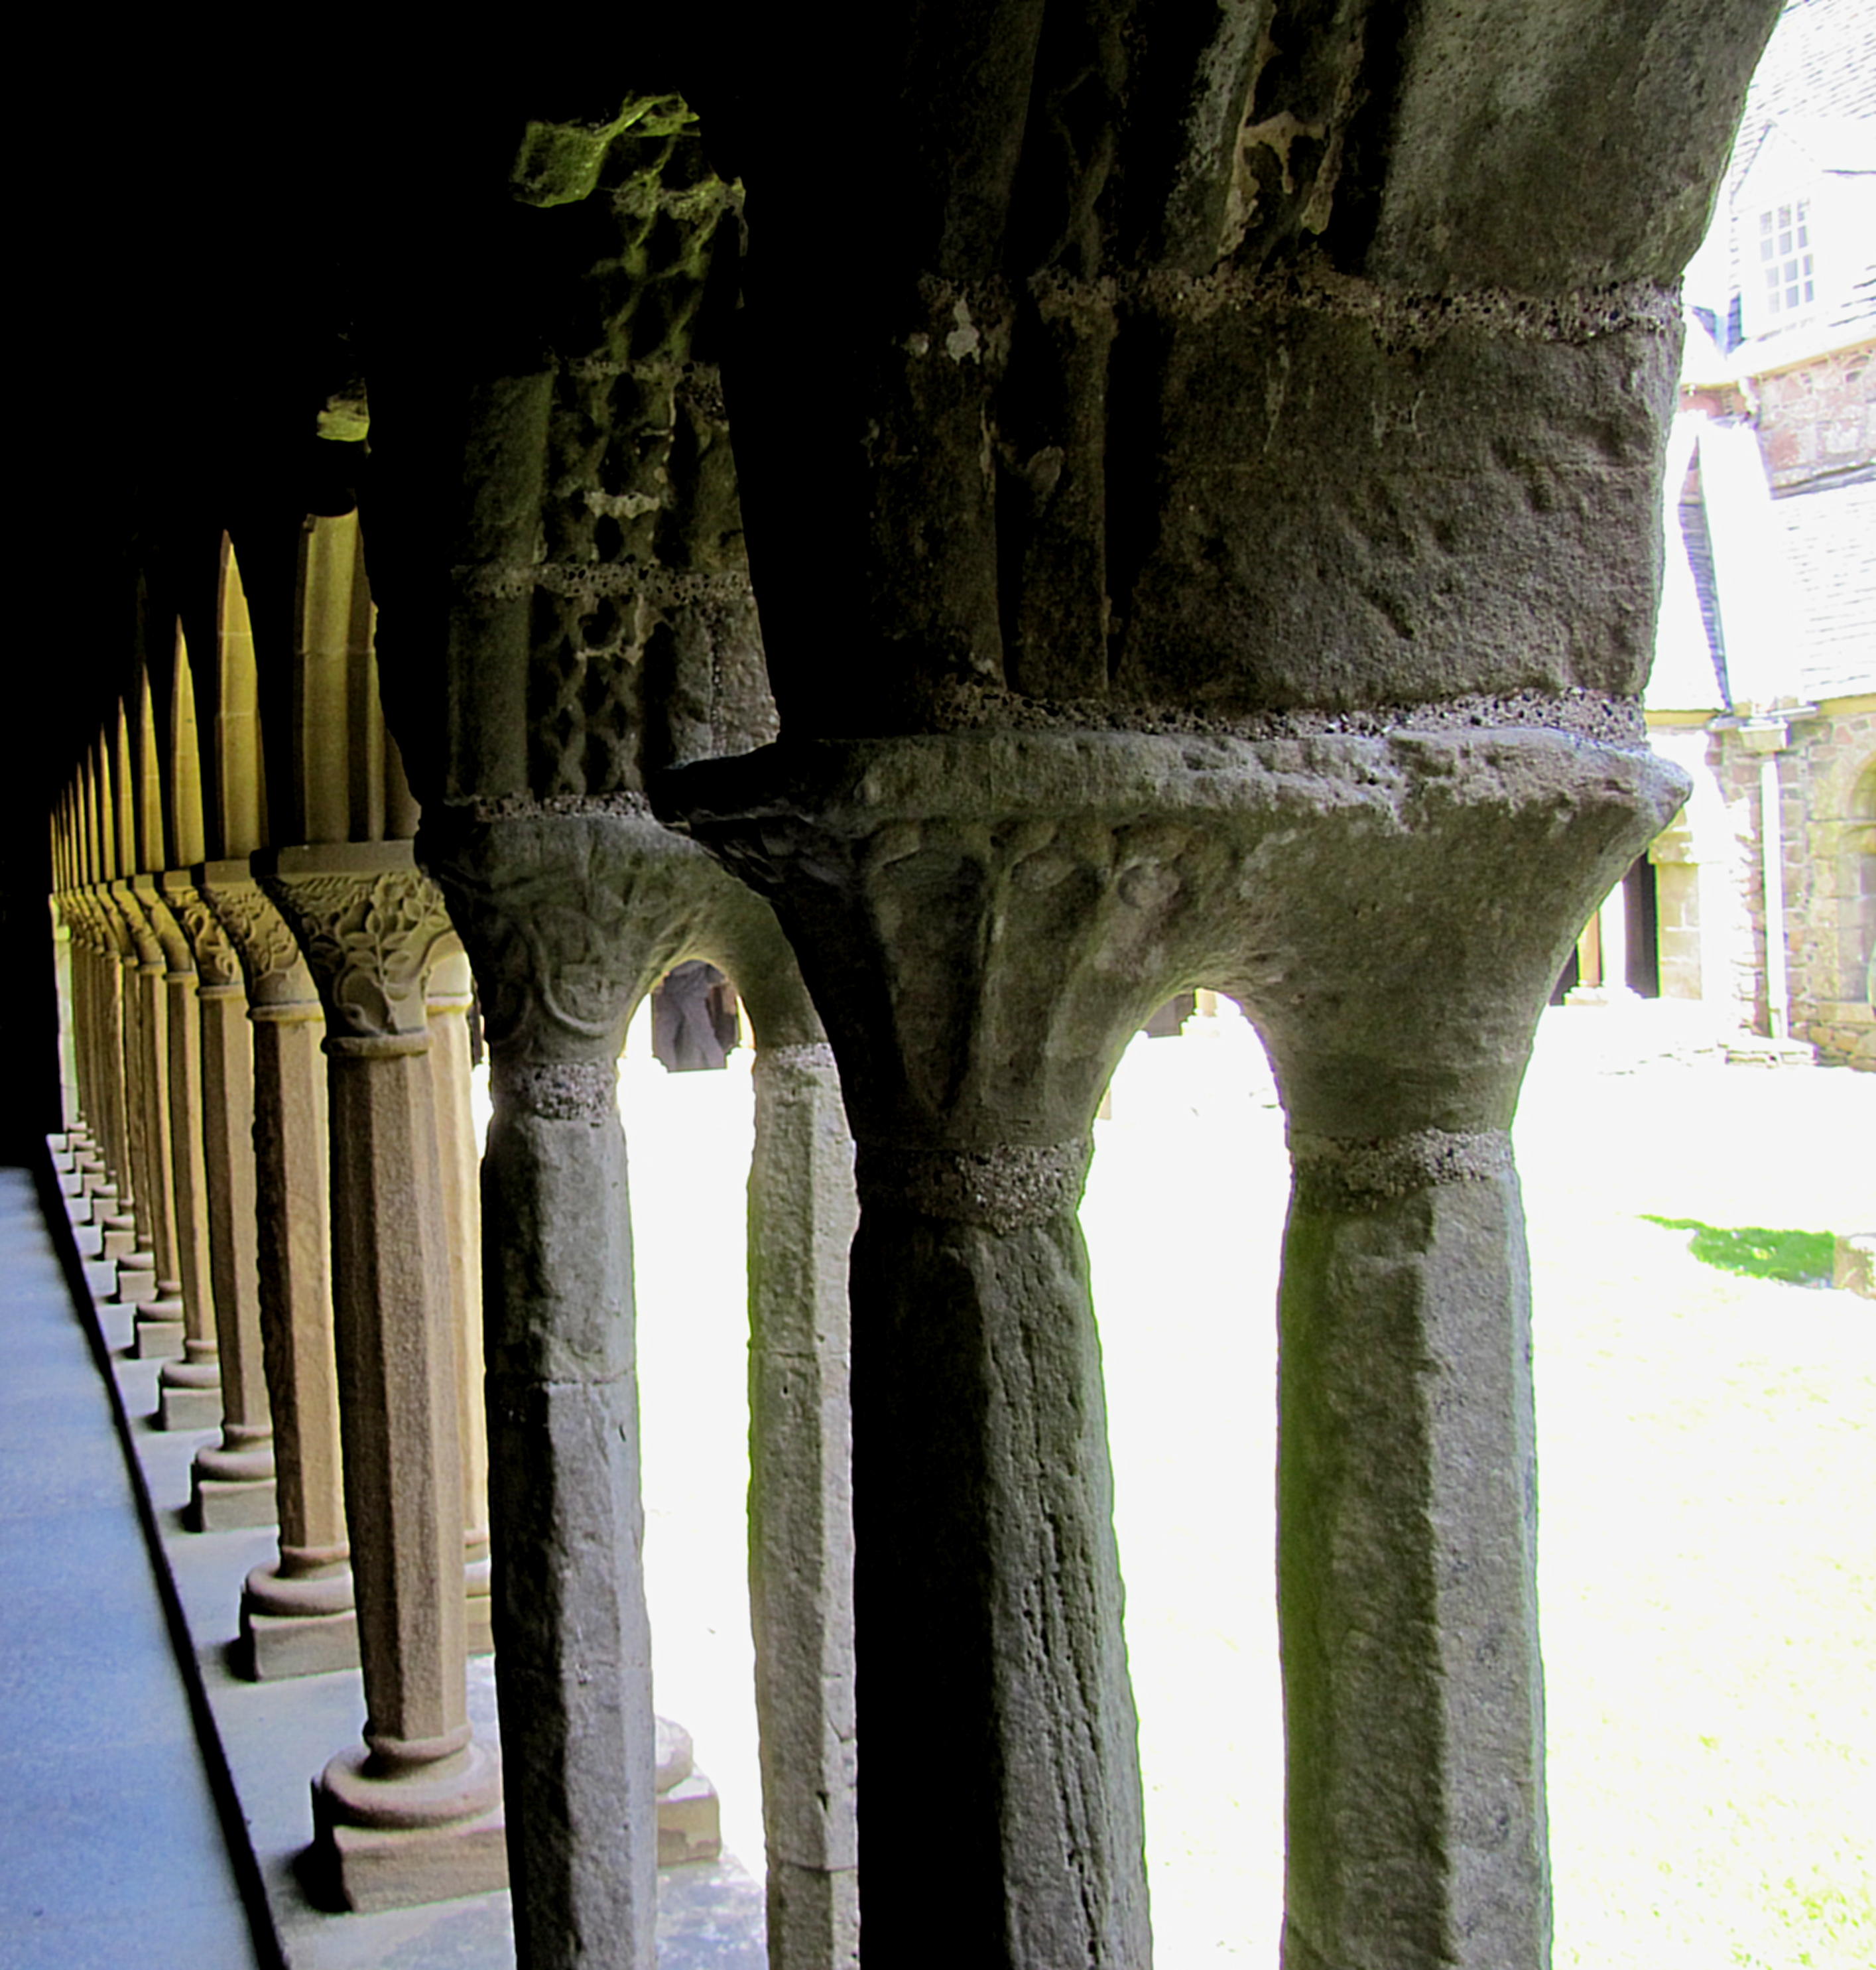 The two column sets in the foreground and the only original cloister columns that have survived. The rest have been recreated, and each set carved uniquely by a different stonemason while working on restoration of the abbey. They did these columns in their spare time, over the course of thirty years.